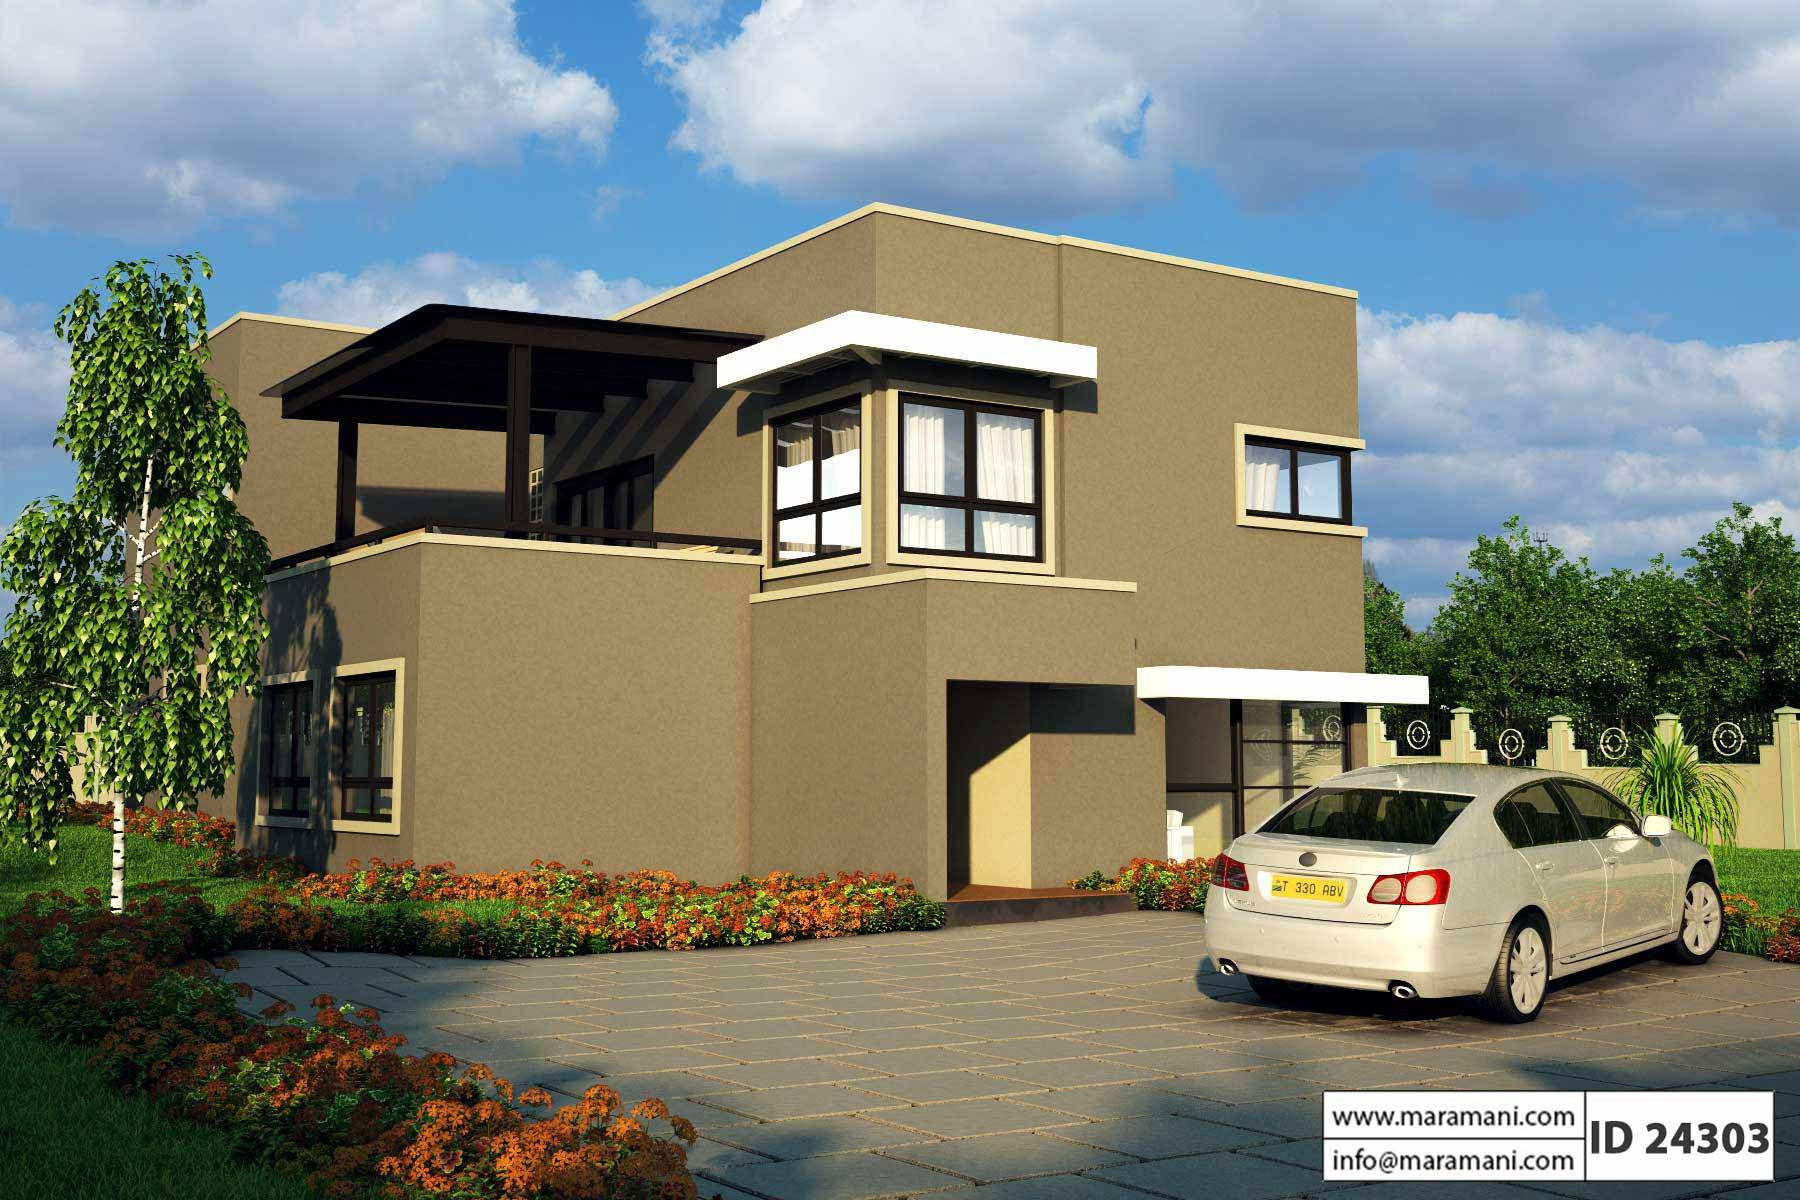 4 bedroom house plan id 24303 - 4 Bedroom House Plans